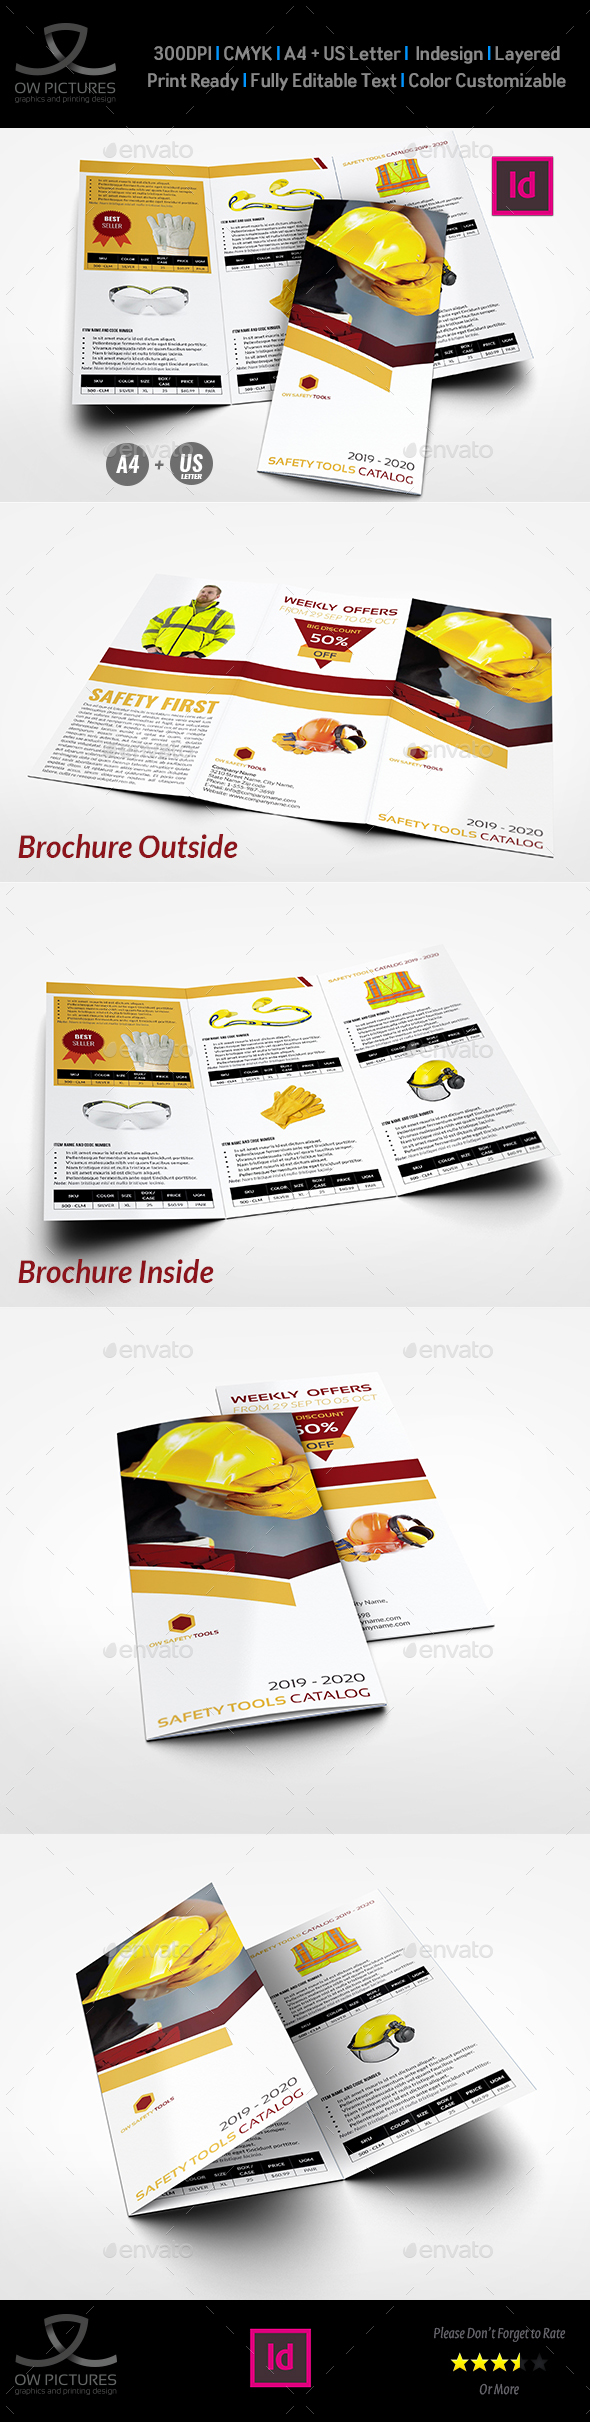 GraphicRiver Safety Tools Catalog Tri-Fold Brochure Template 20979945